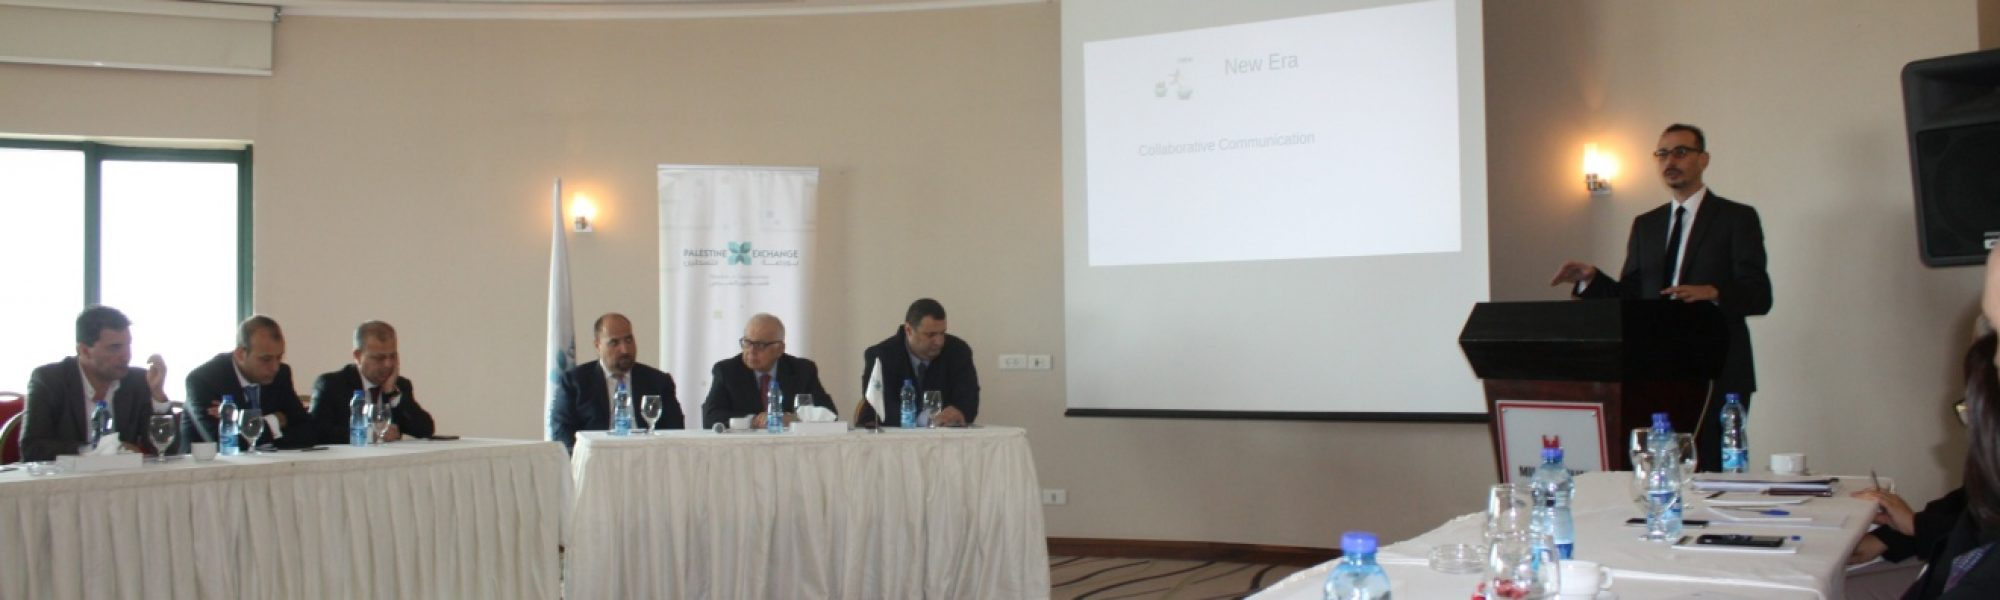 Palestine-Exchange-Organizes-a-Workshop-titled-Bro